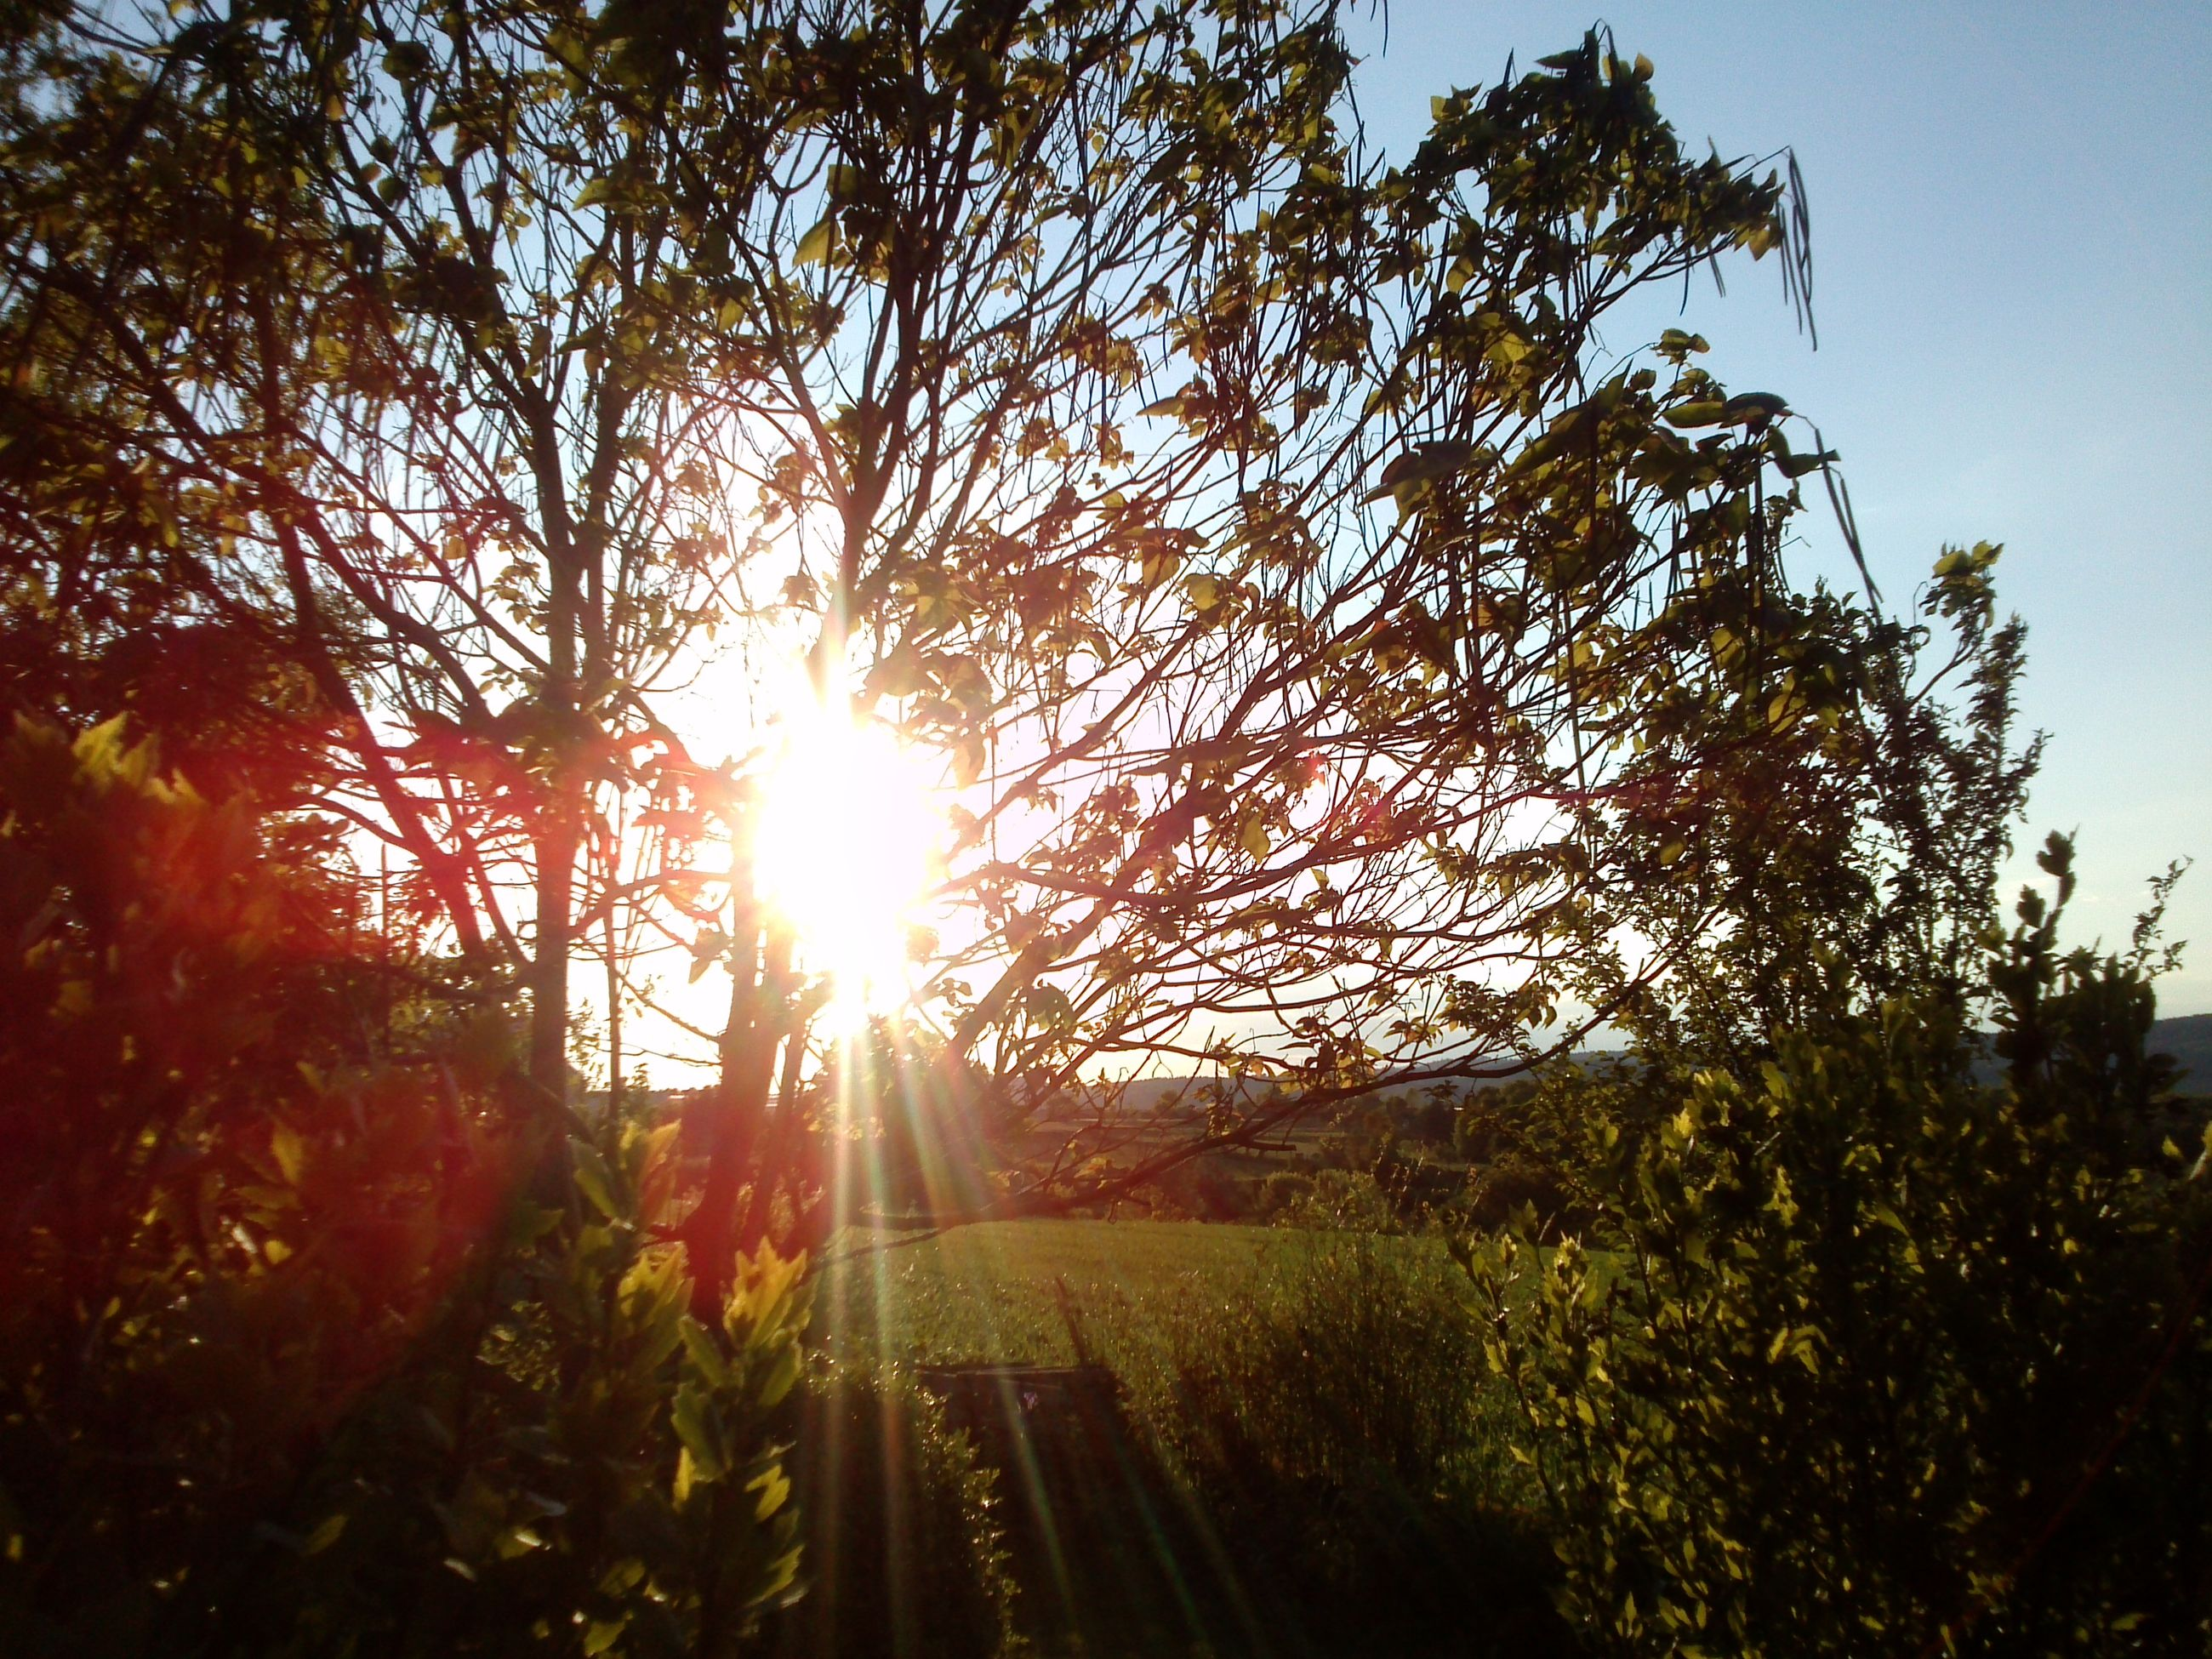 sun, tree, sunbeam, sunlight, lens flare, transportation, tranquility, sunset, nature, growth, the way forward, tranquil scene, landscape, beauty in nature, sky, scenics, diminishing perspective, road, sunny, vanishing point